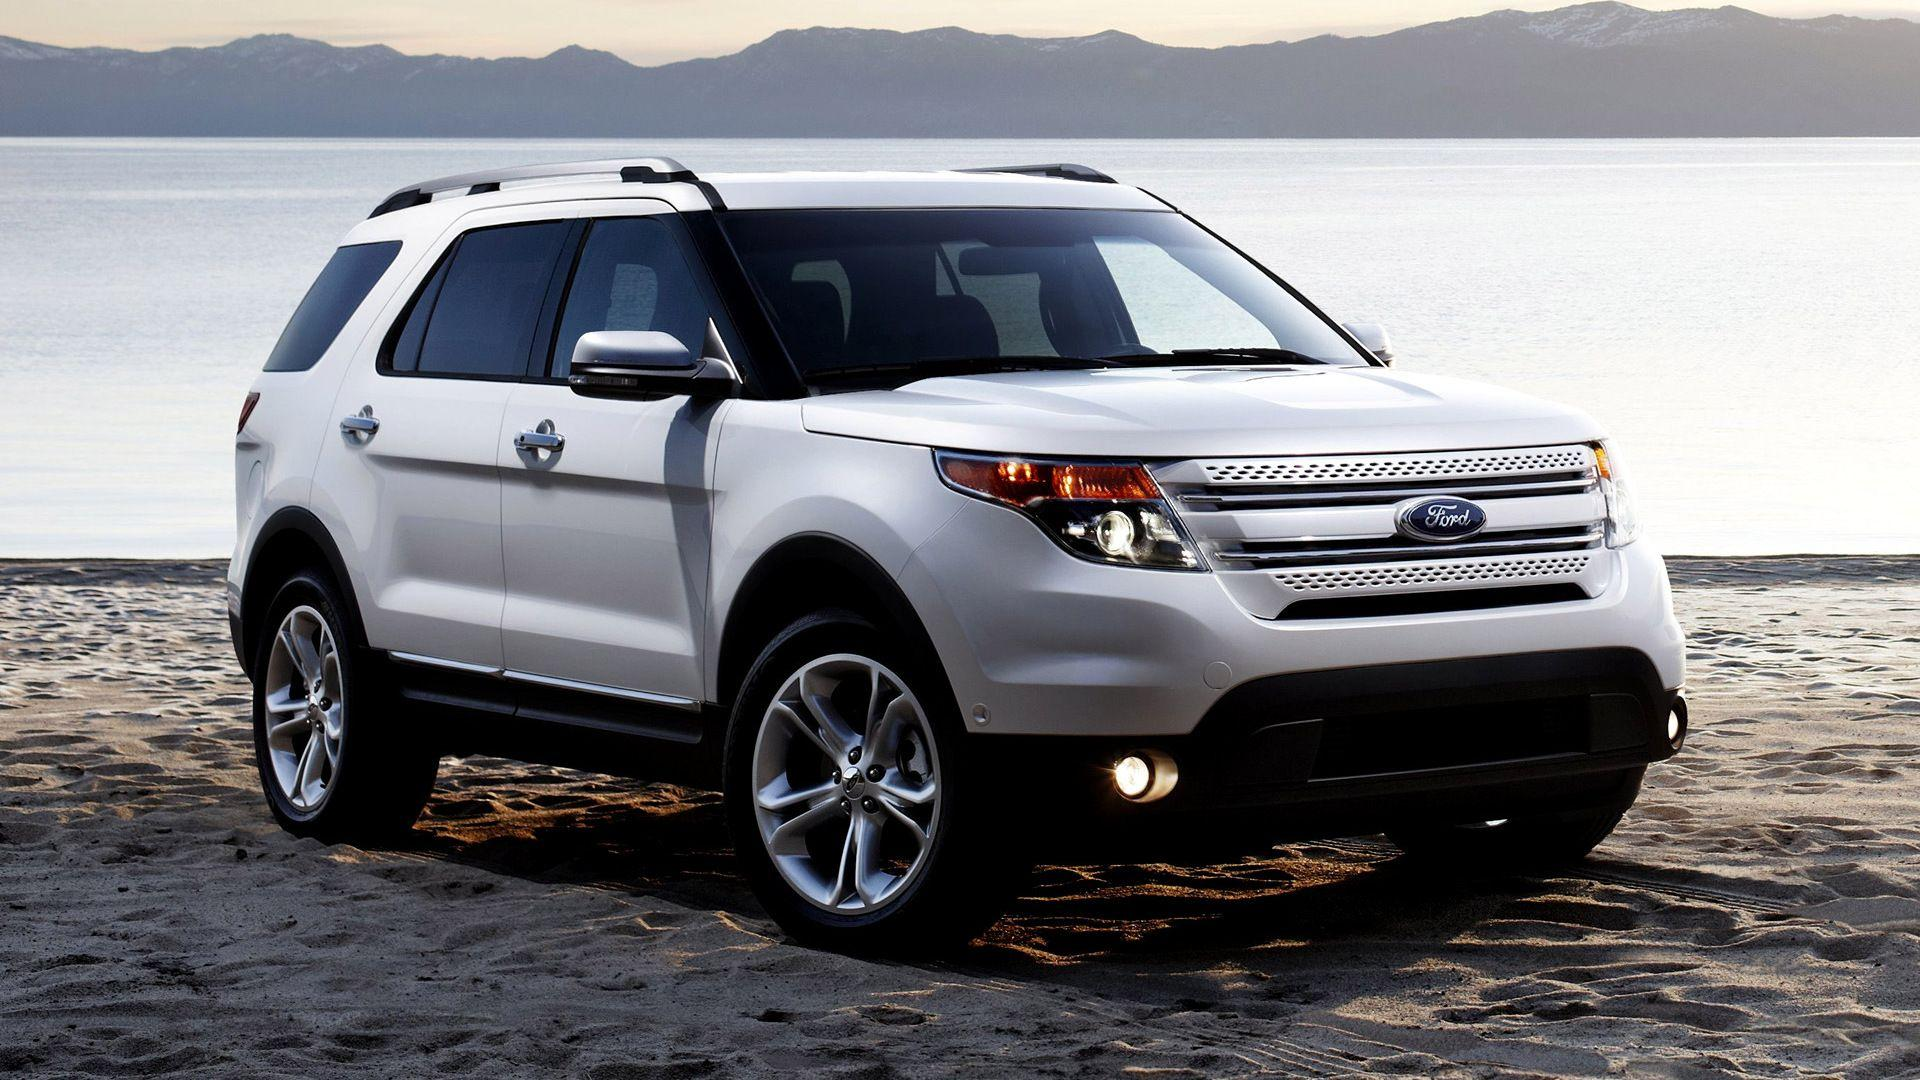 Ford Explorer (2010) Wallpapers and HD Images - Car Pixel